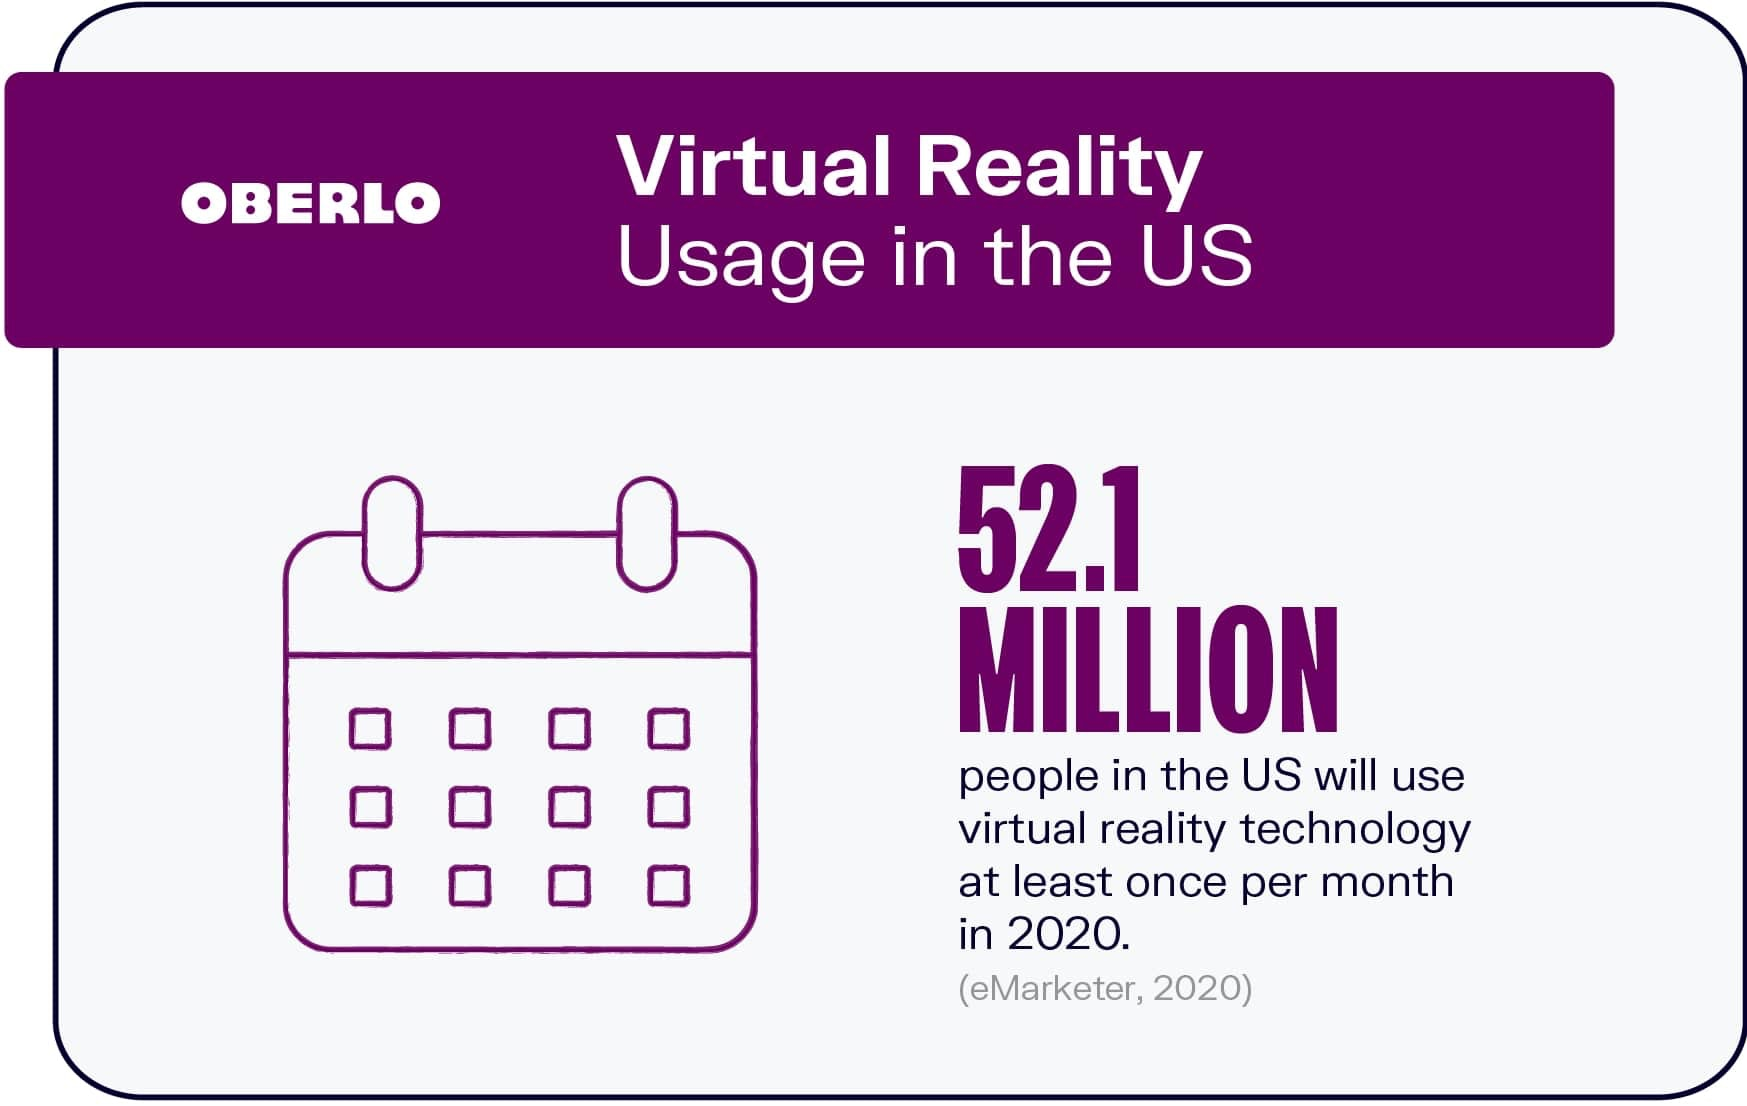 Virtual Reality Usage in the US